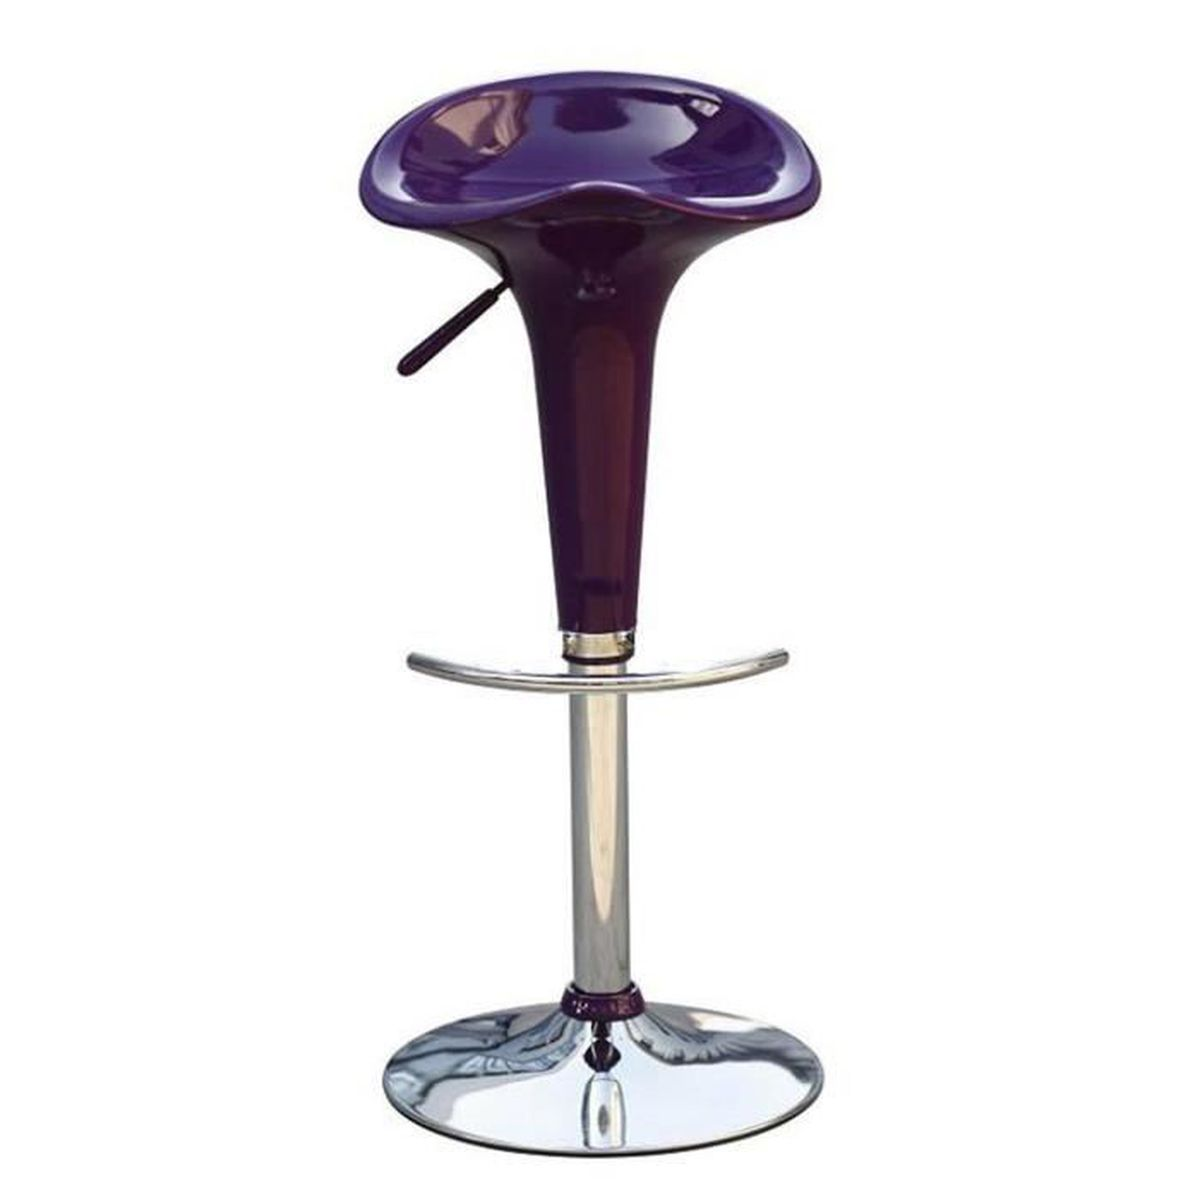 tabouret de bar avec si ge en plastique coloris violet 37 x 37 x 87 cm ac. Black Bedroom Furniture Sets. Home Design Ideas